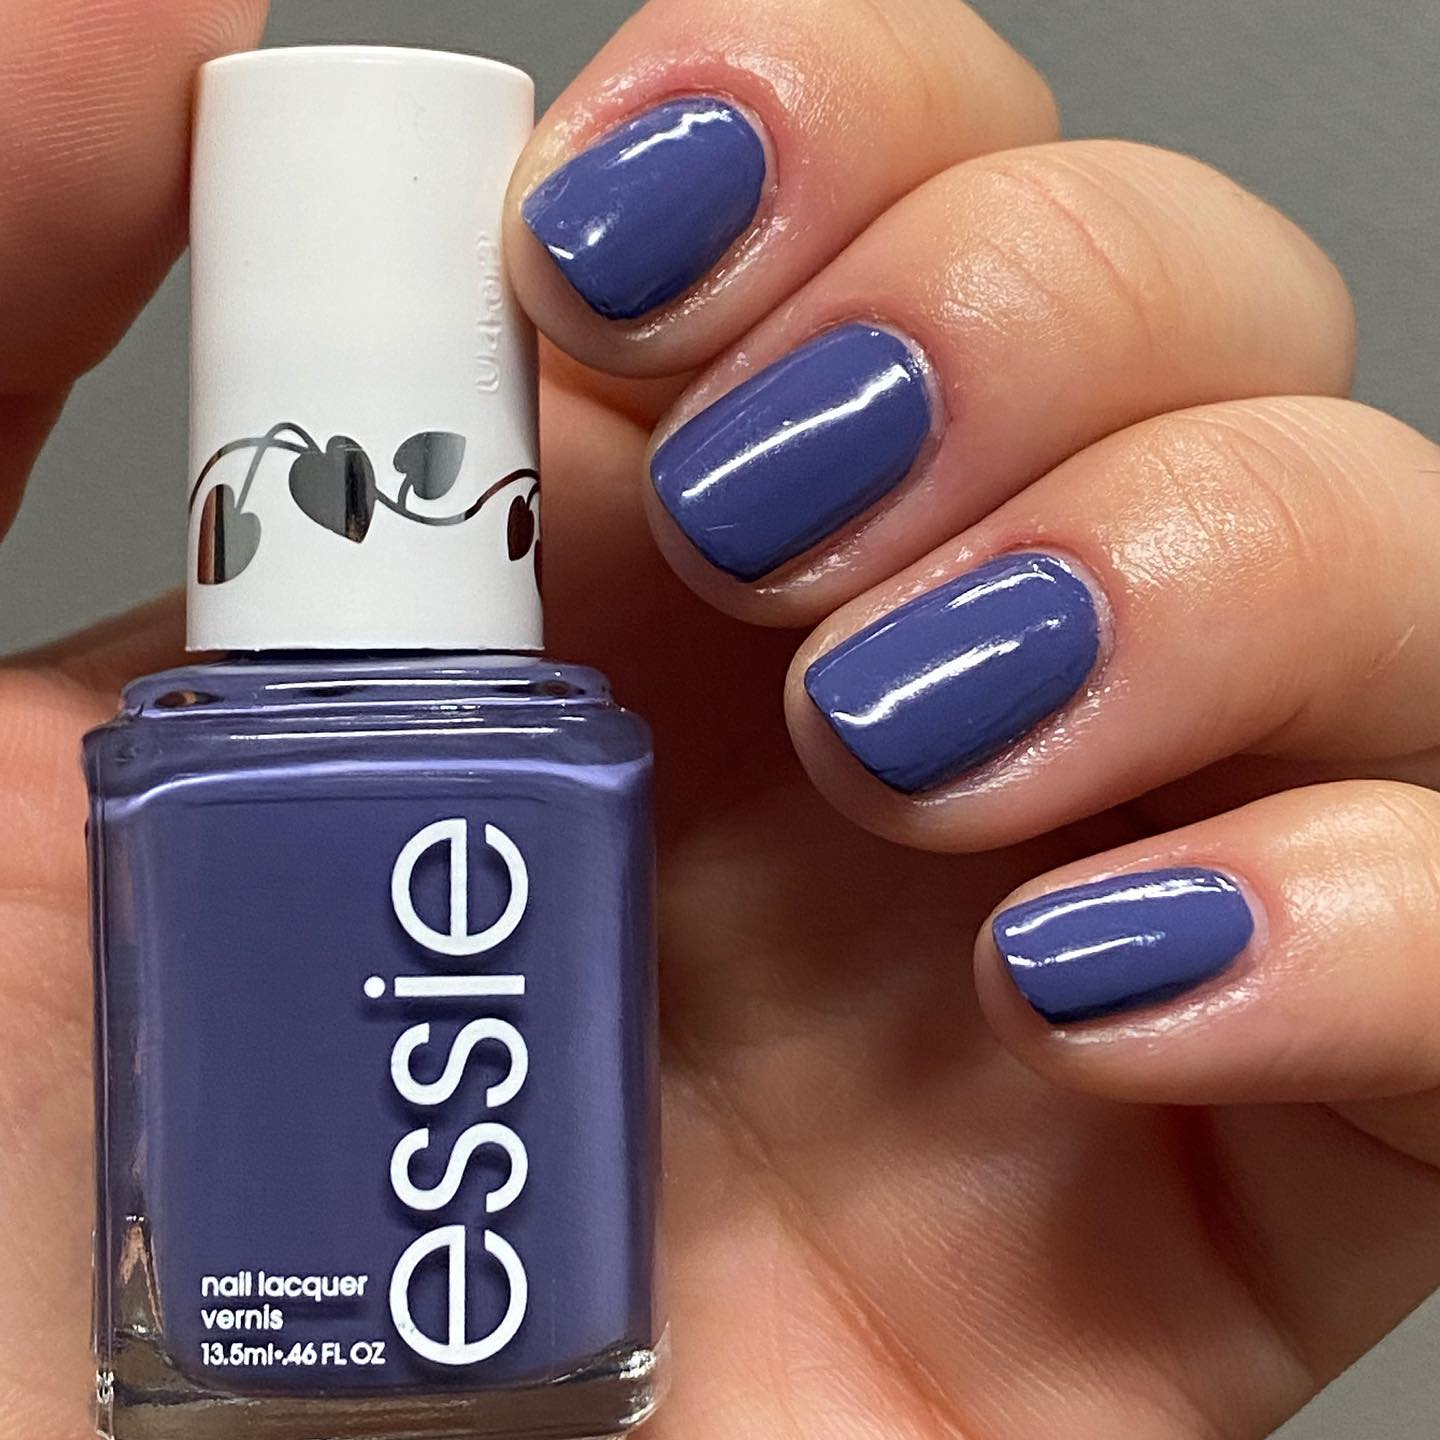 image posted by @justanotherpolish.